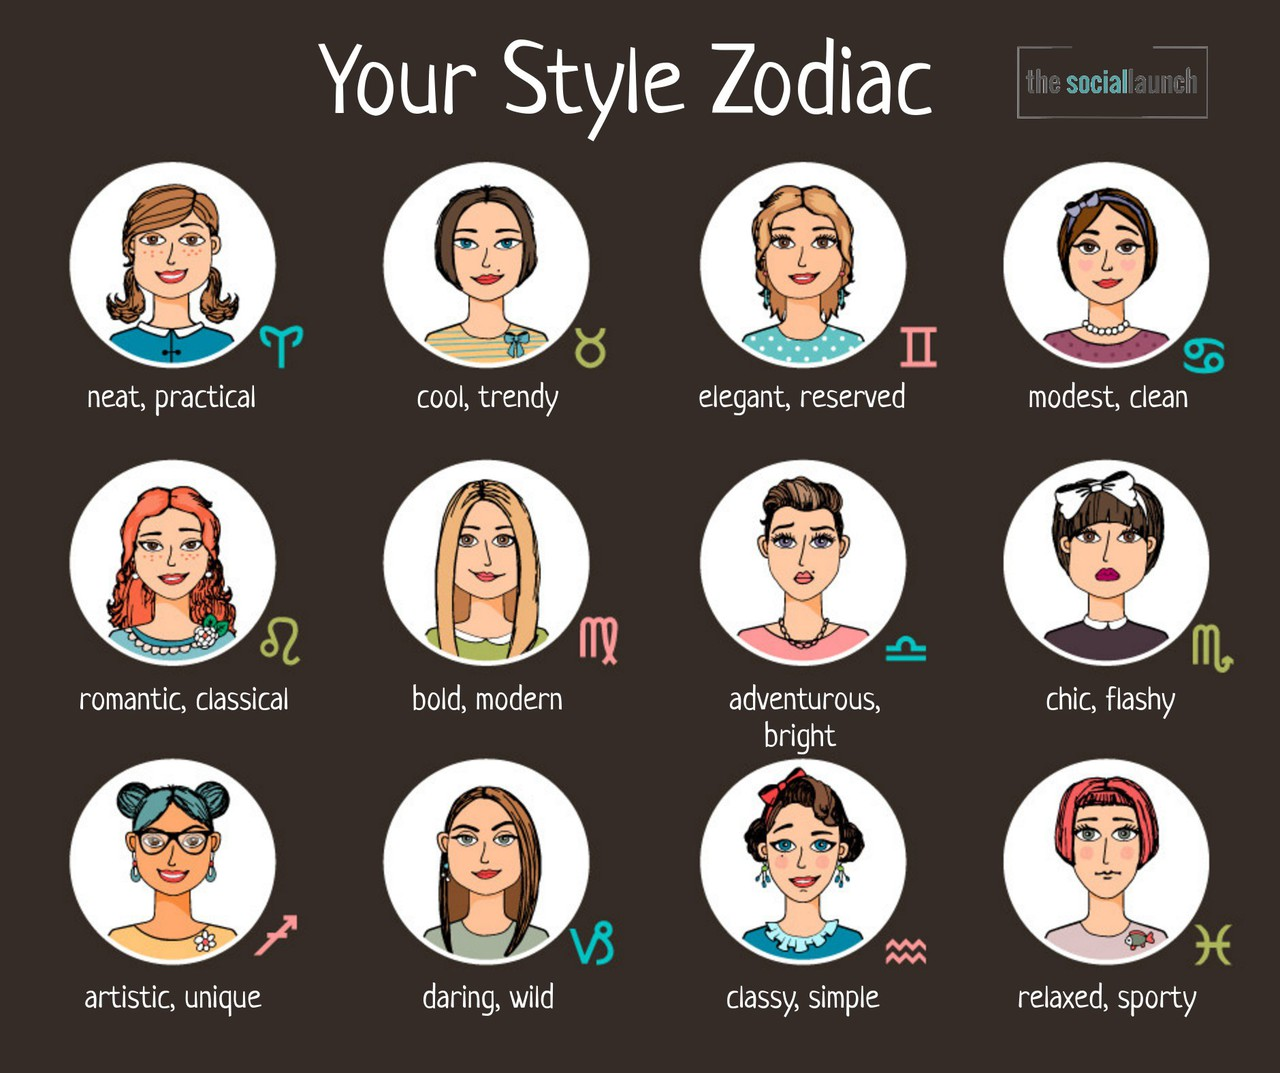 whats your zodiac style